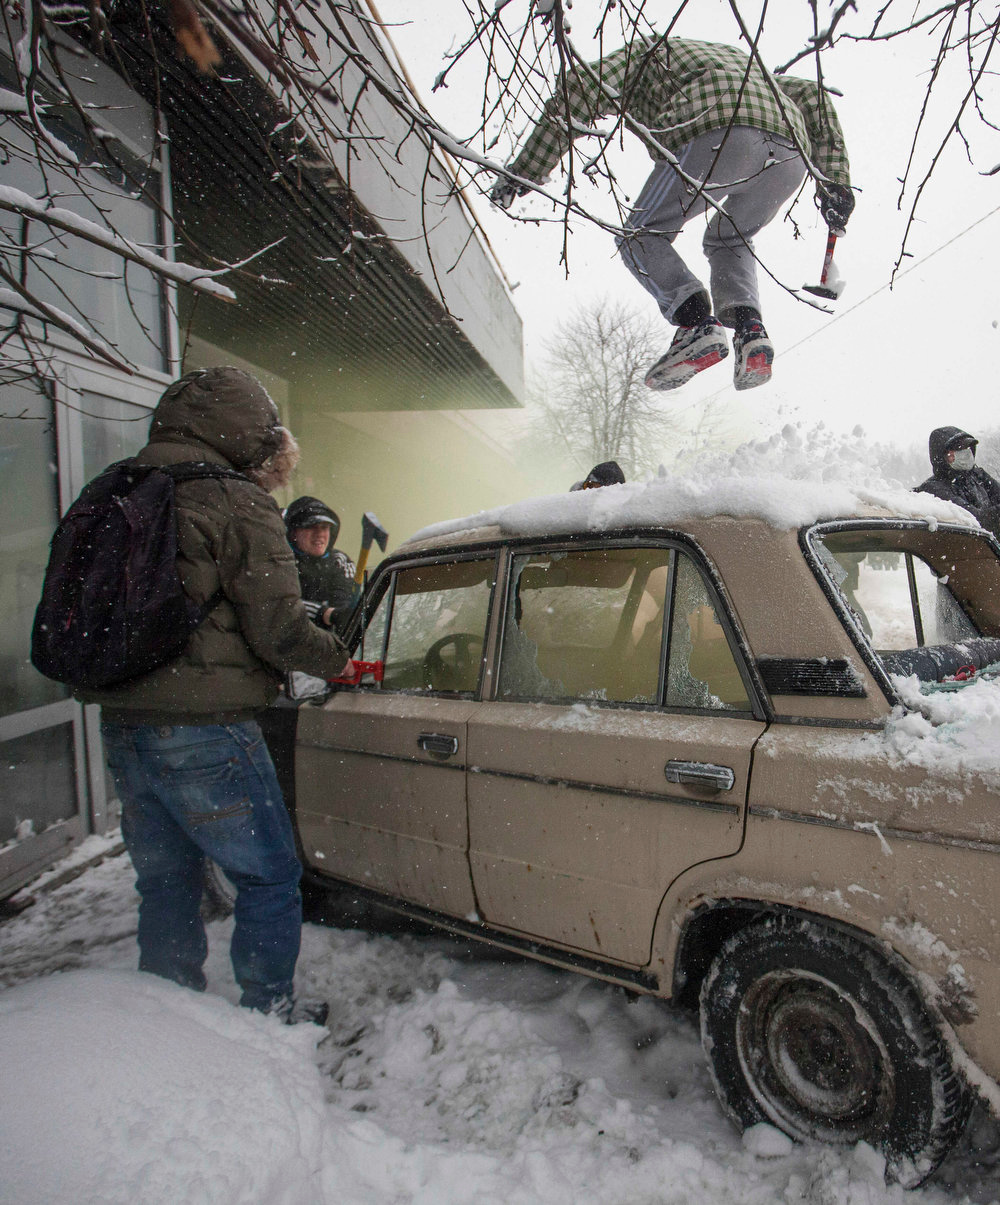 . In this photo taken on Friday, March 15, 2013, members of a pro-Kremlin youth group attack pushers of spice, a synthetic drug, in Moscow, Russia. Russian officials and anti-drugs campaigners say that spice has become one of the most dangerous drugs widely available to youngsters and almost impossible to ban because of the constantly changing chemical ingredients. (AP Photo/ Alexander Zemlianichenko Jr)